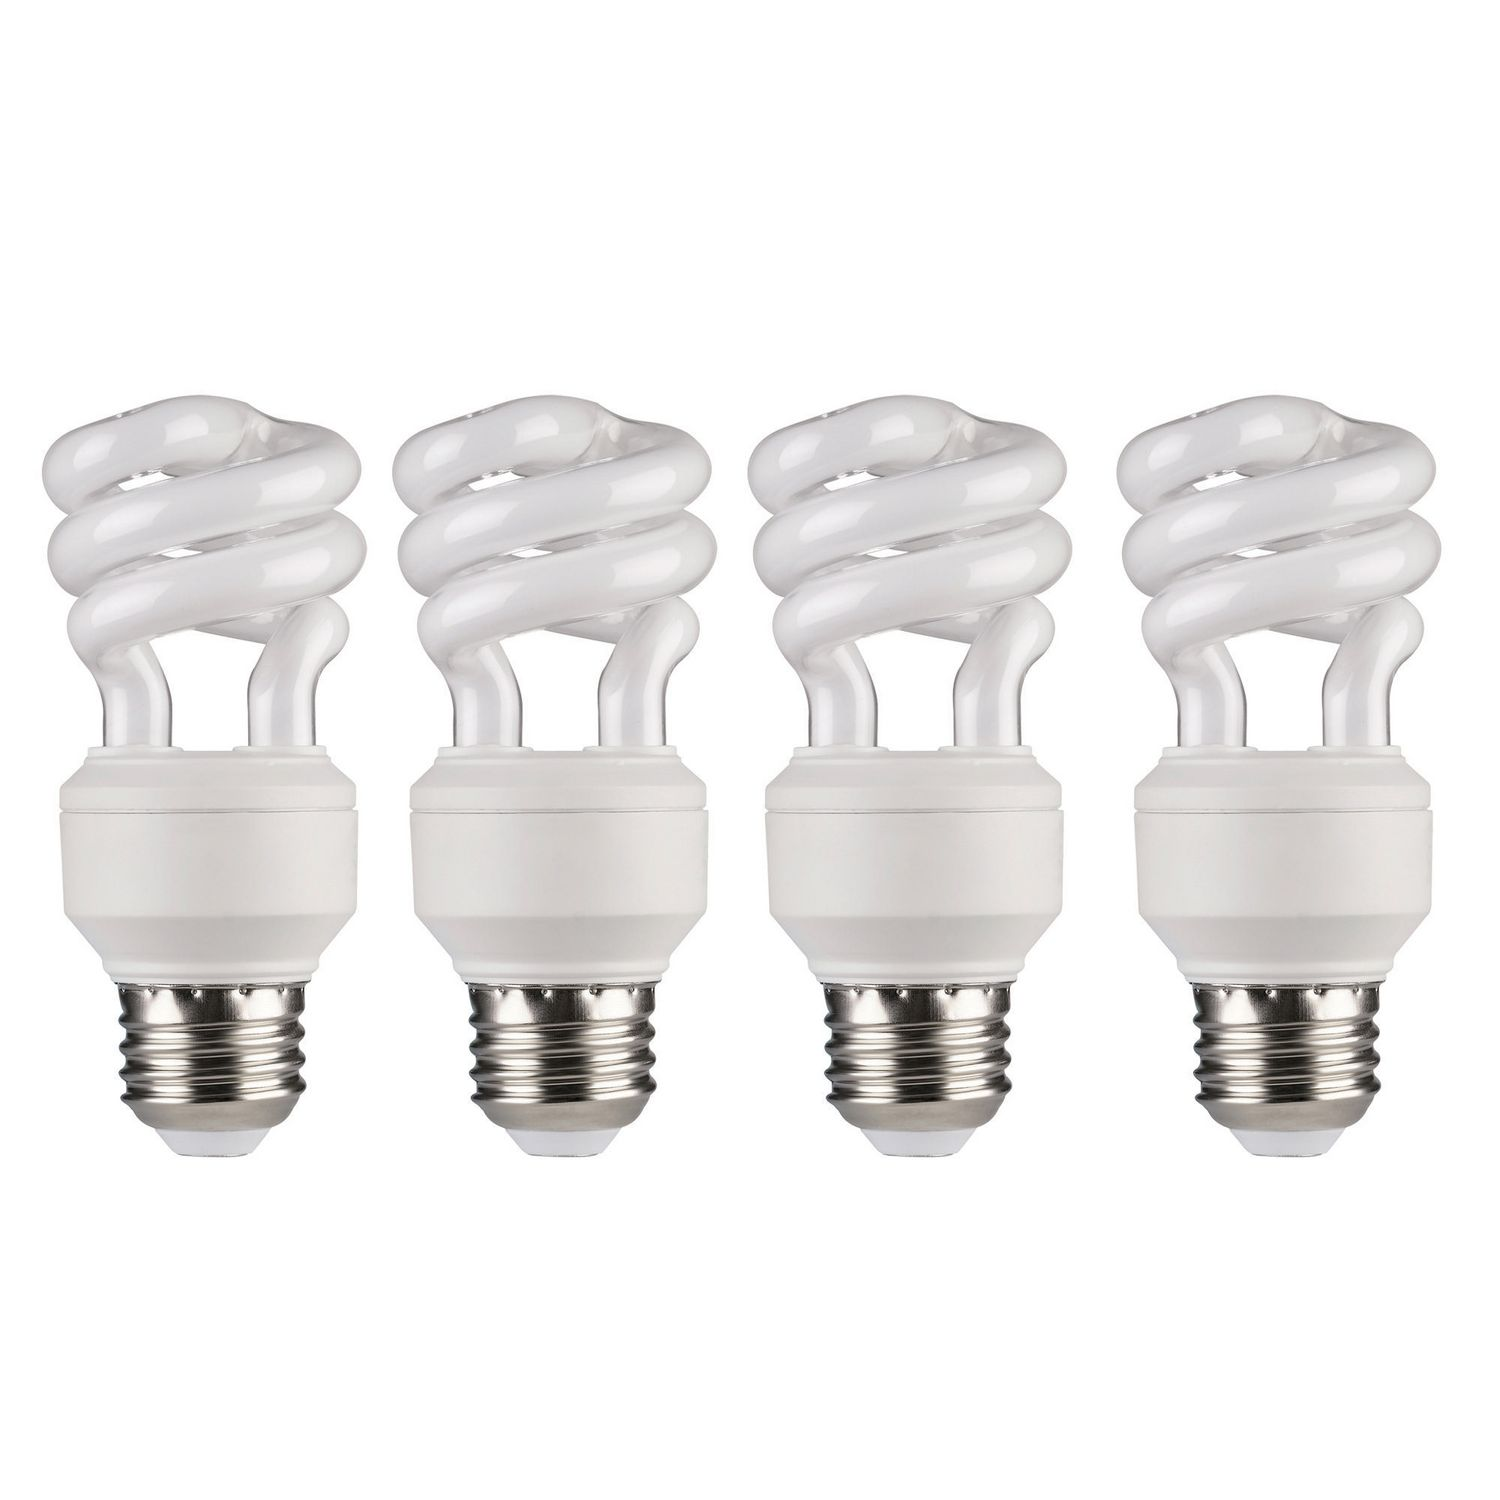 bulb bulbs saudi lamp buy light cfl alibaba com arabia on product fluorescent detail parts names